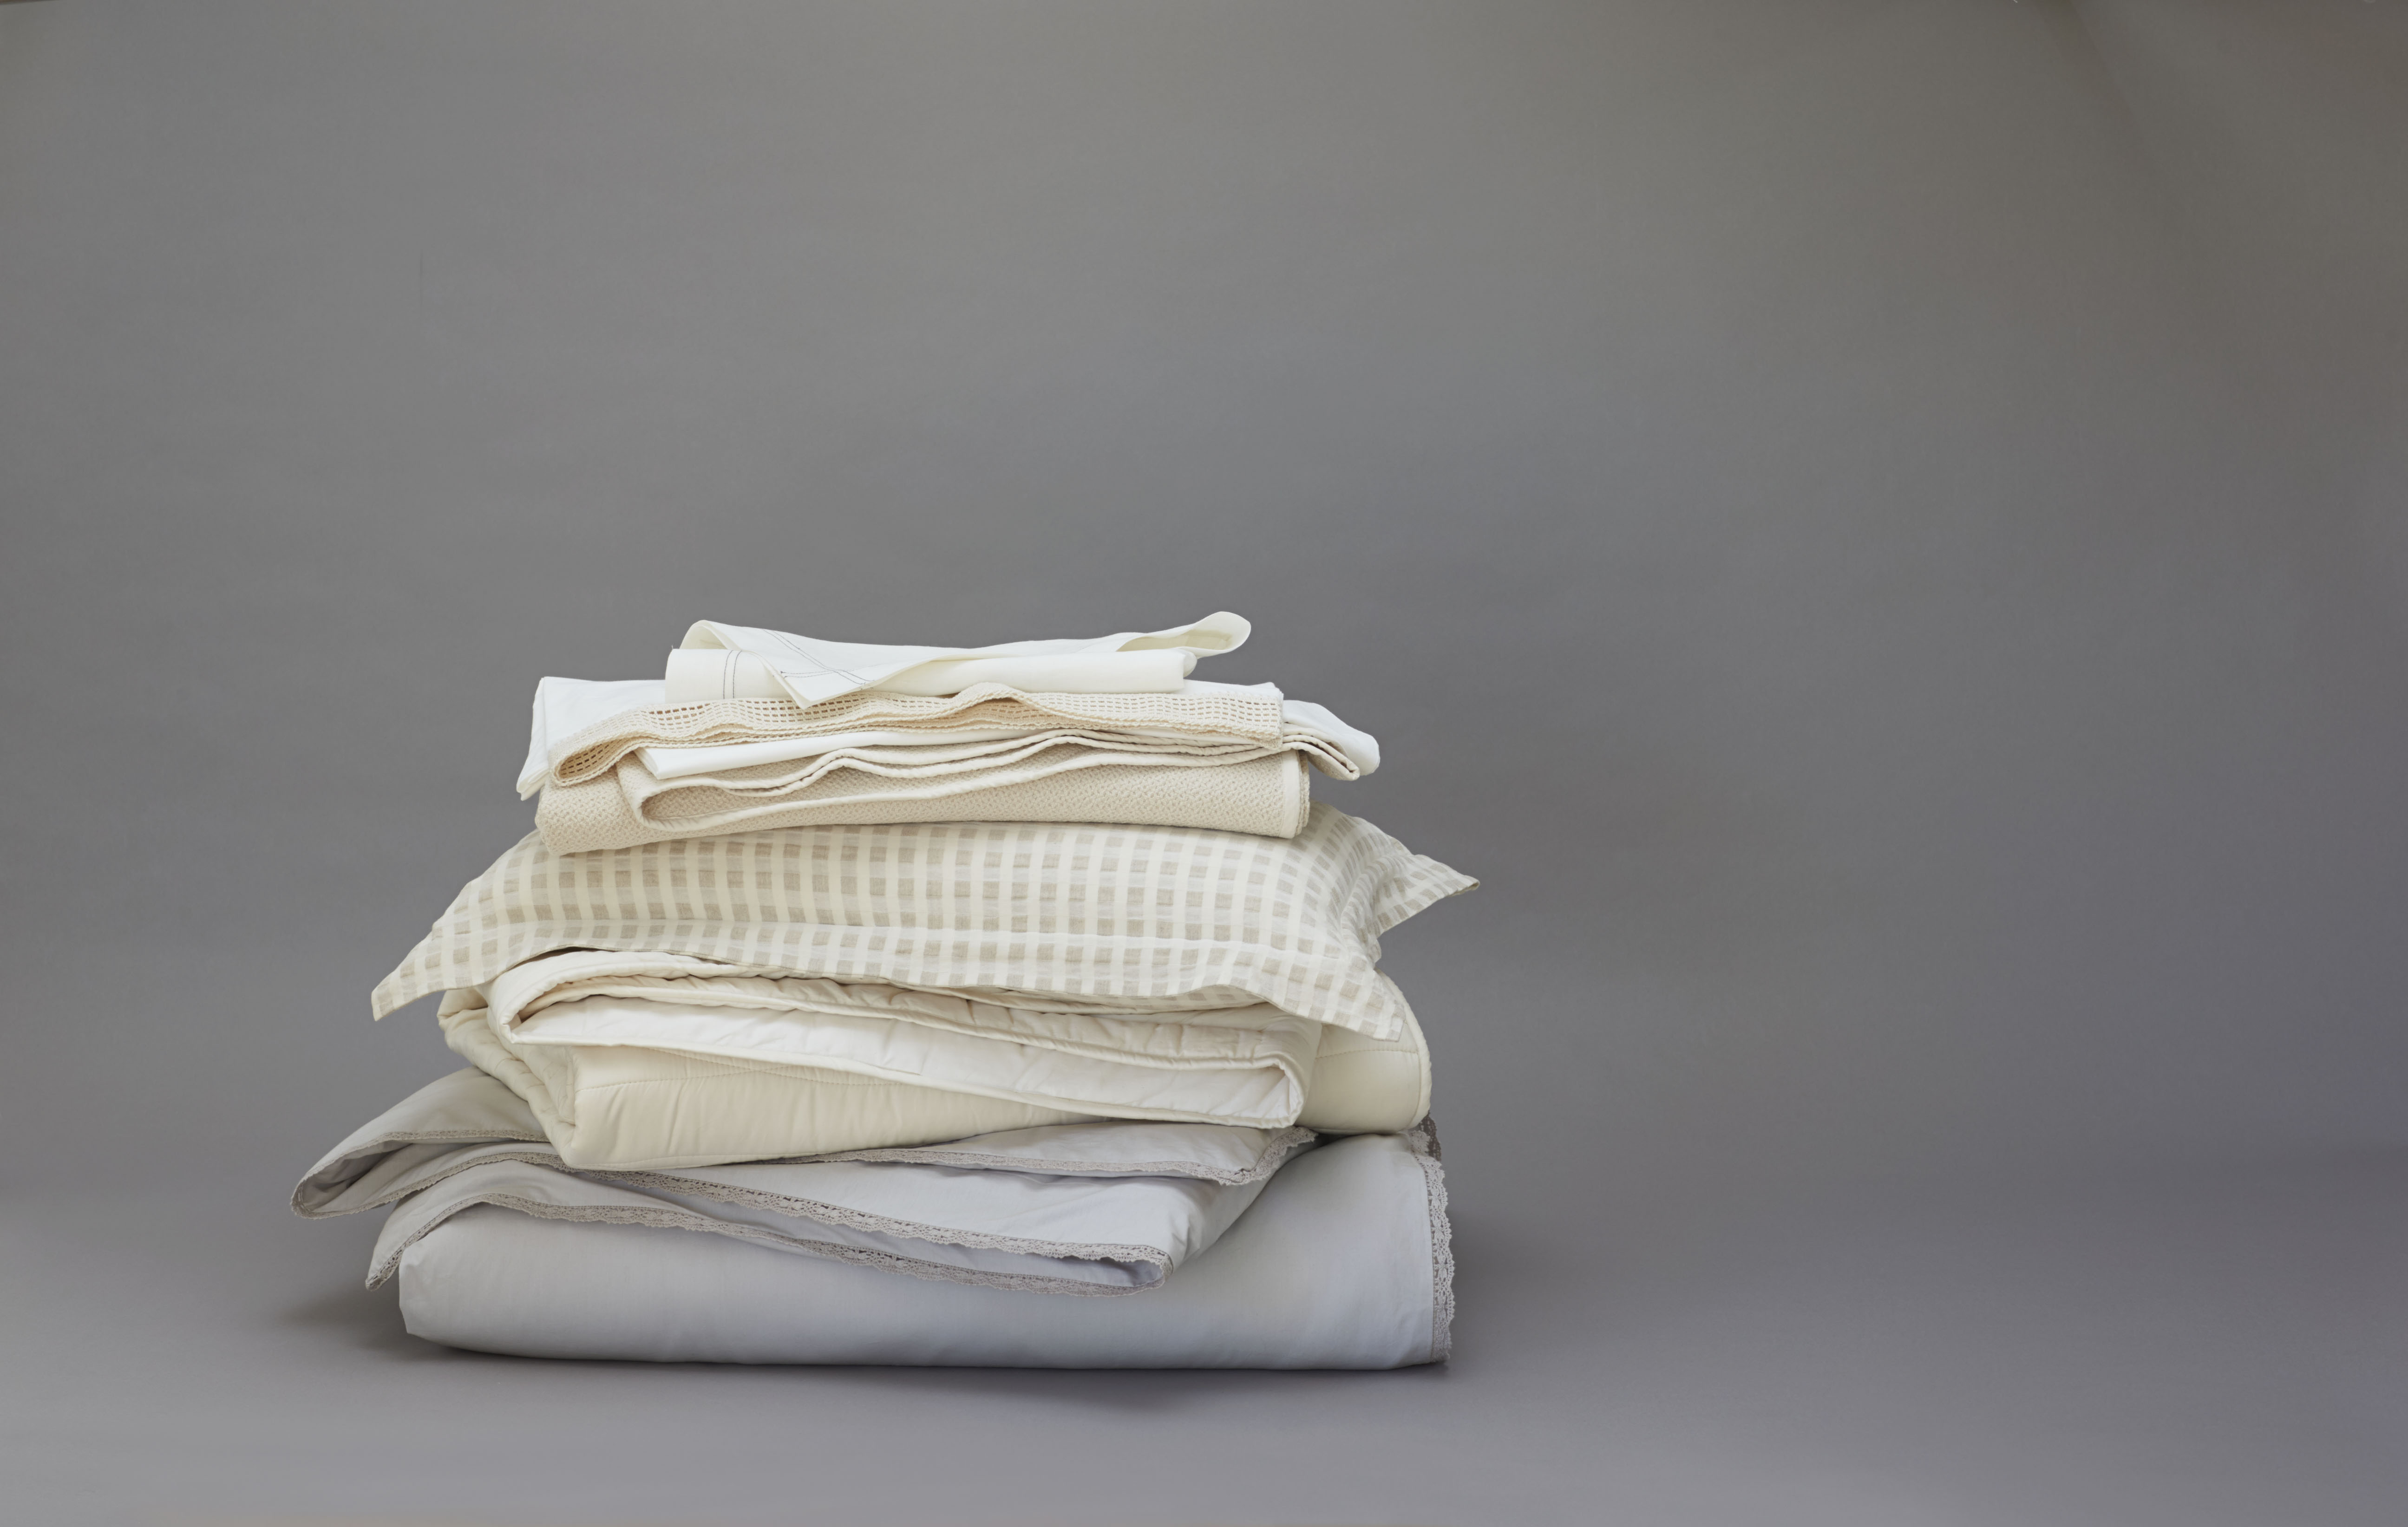 Coyuchi | Coyuchi Bedding | Coyuchi Towels Sale